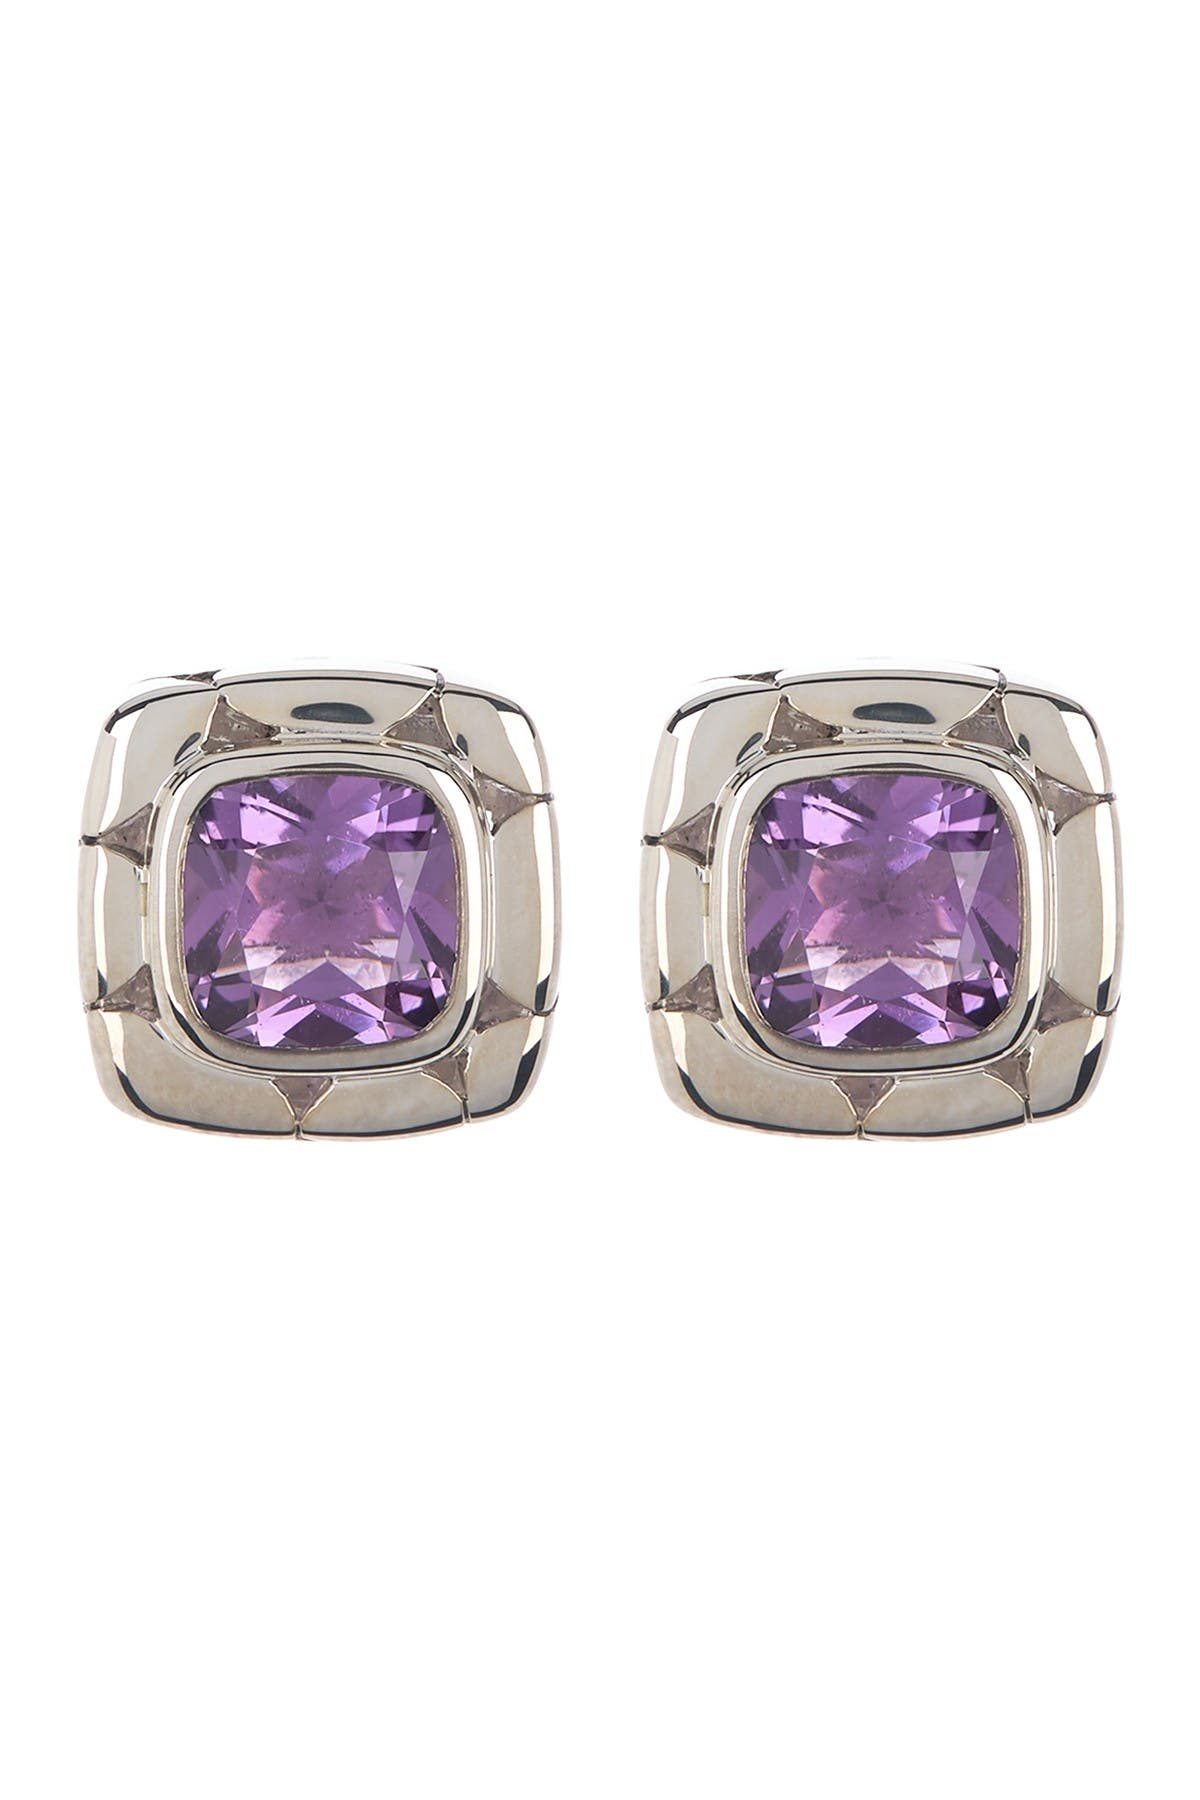 Image of JOHN HARDY Sterling Silver Kali Amethyst Square Stud Earrings